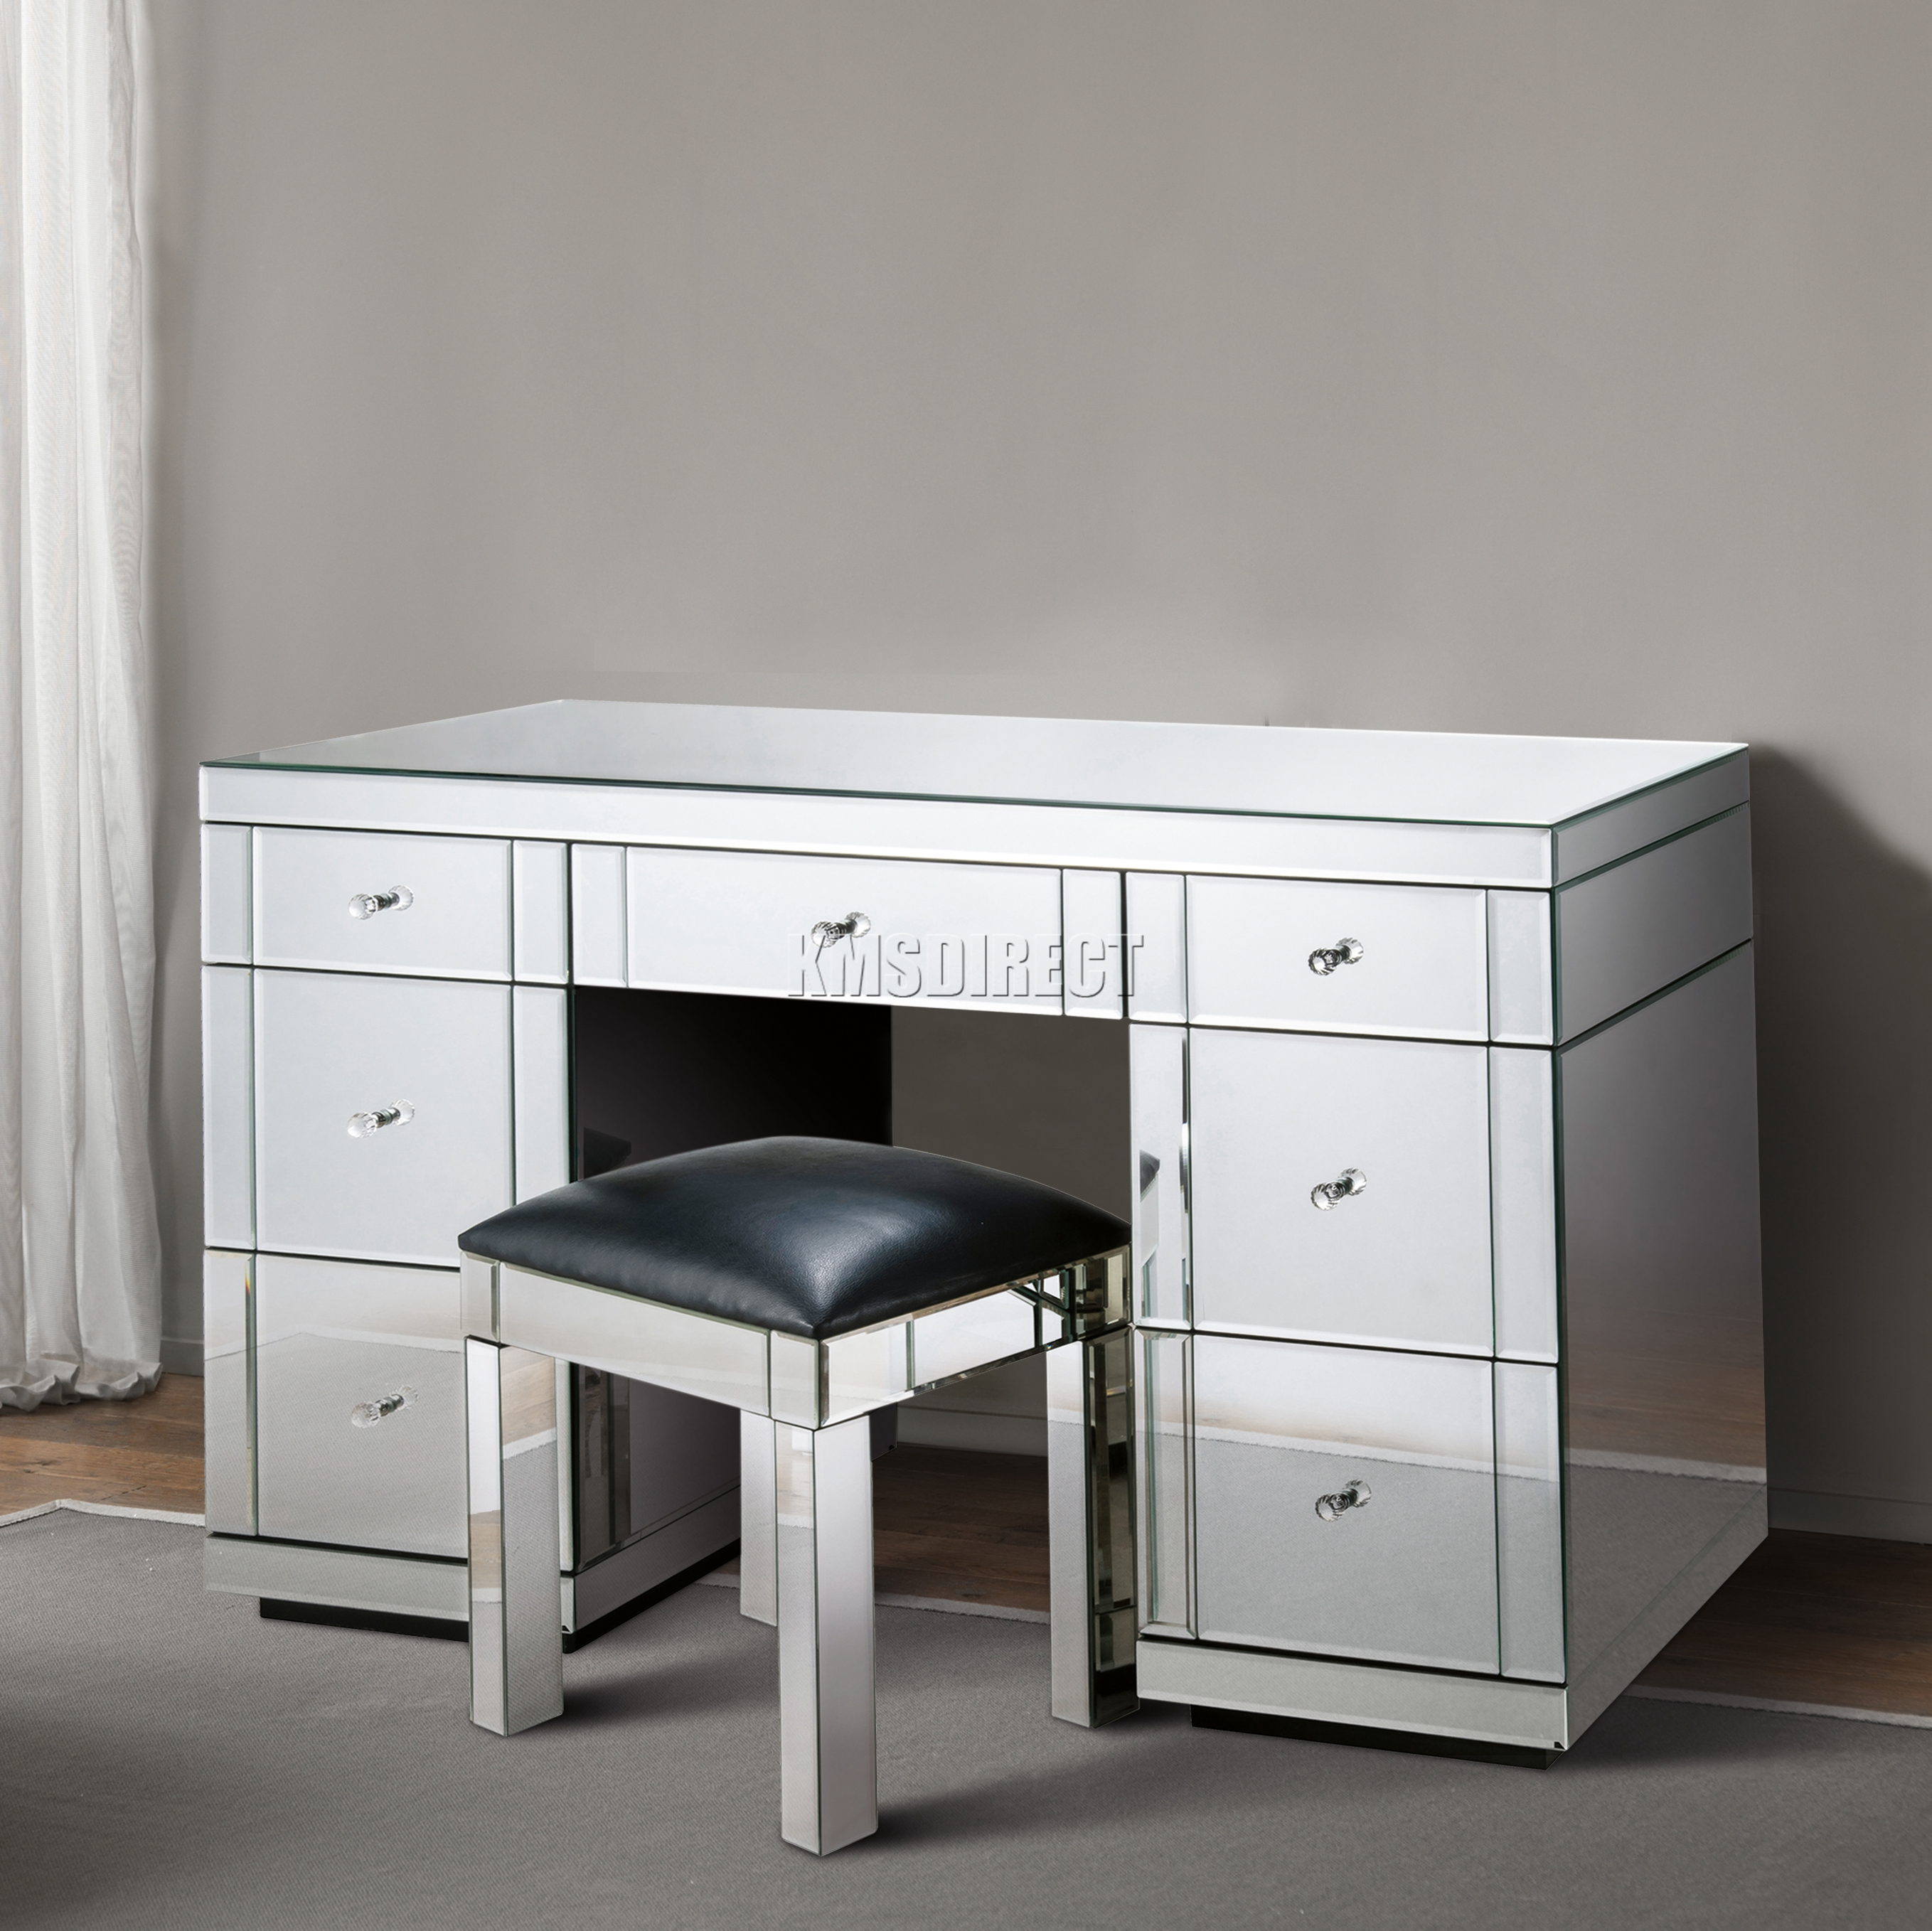 Mirrored Furniture For Bedroom Foxhunter Mirrored Furniture Glass Dressing Table With Drawer